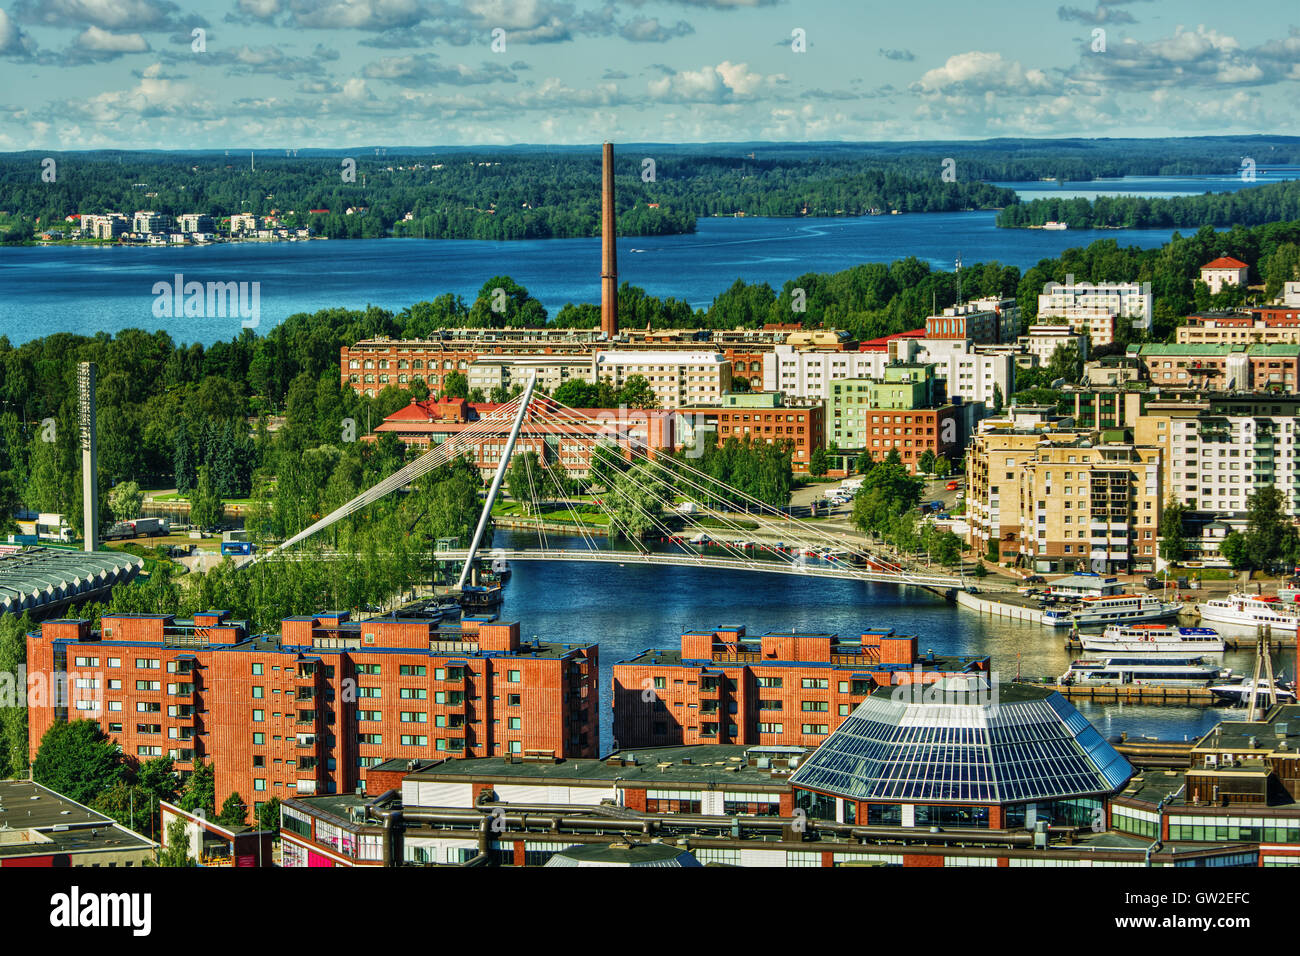 July 2016, urban capture of Tampere (Finland) - Stock Image